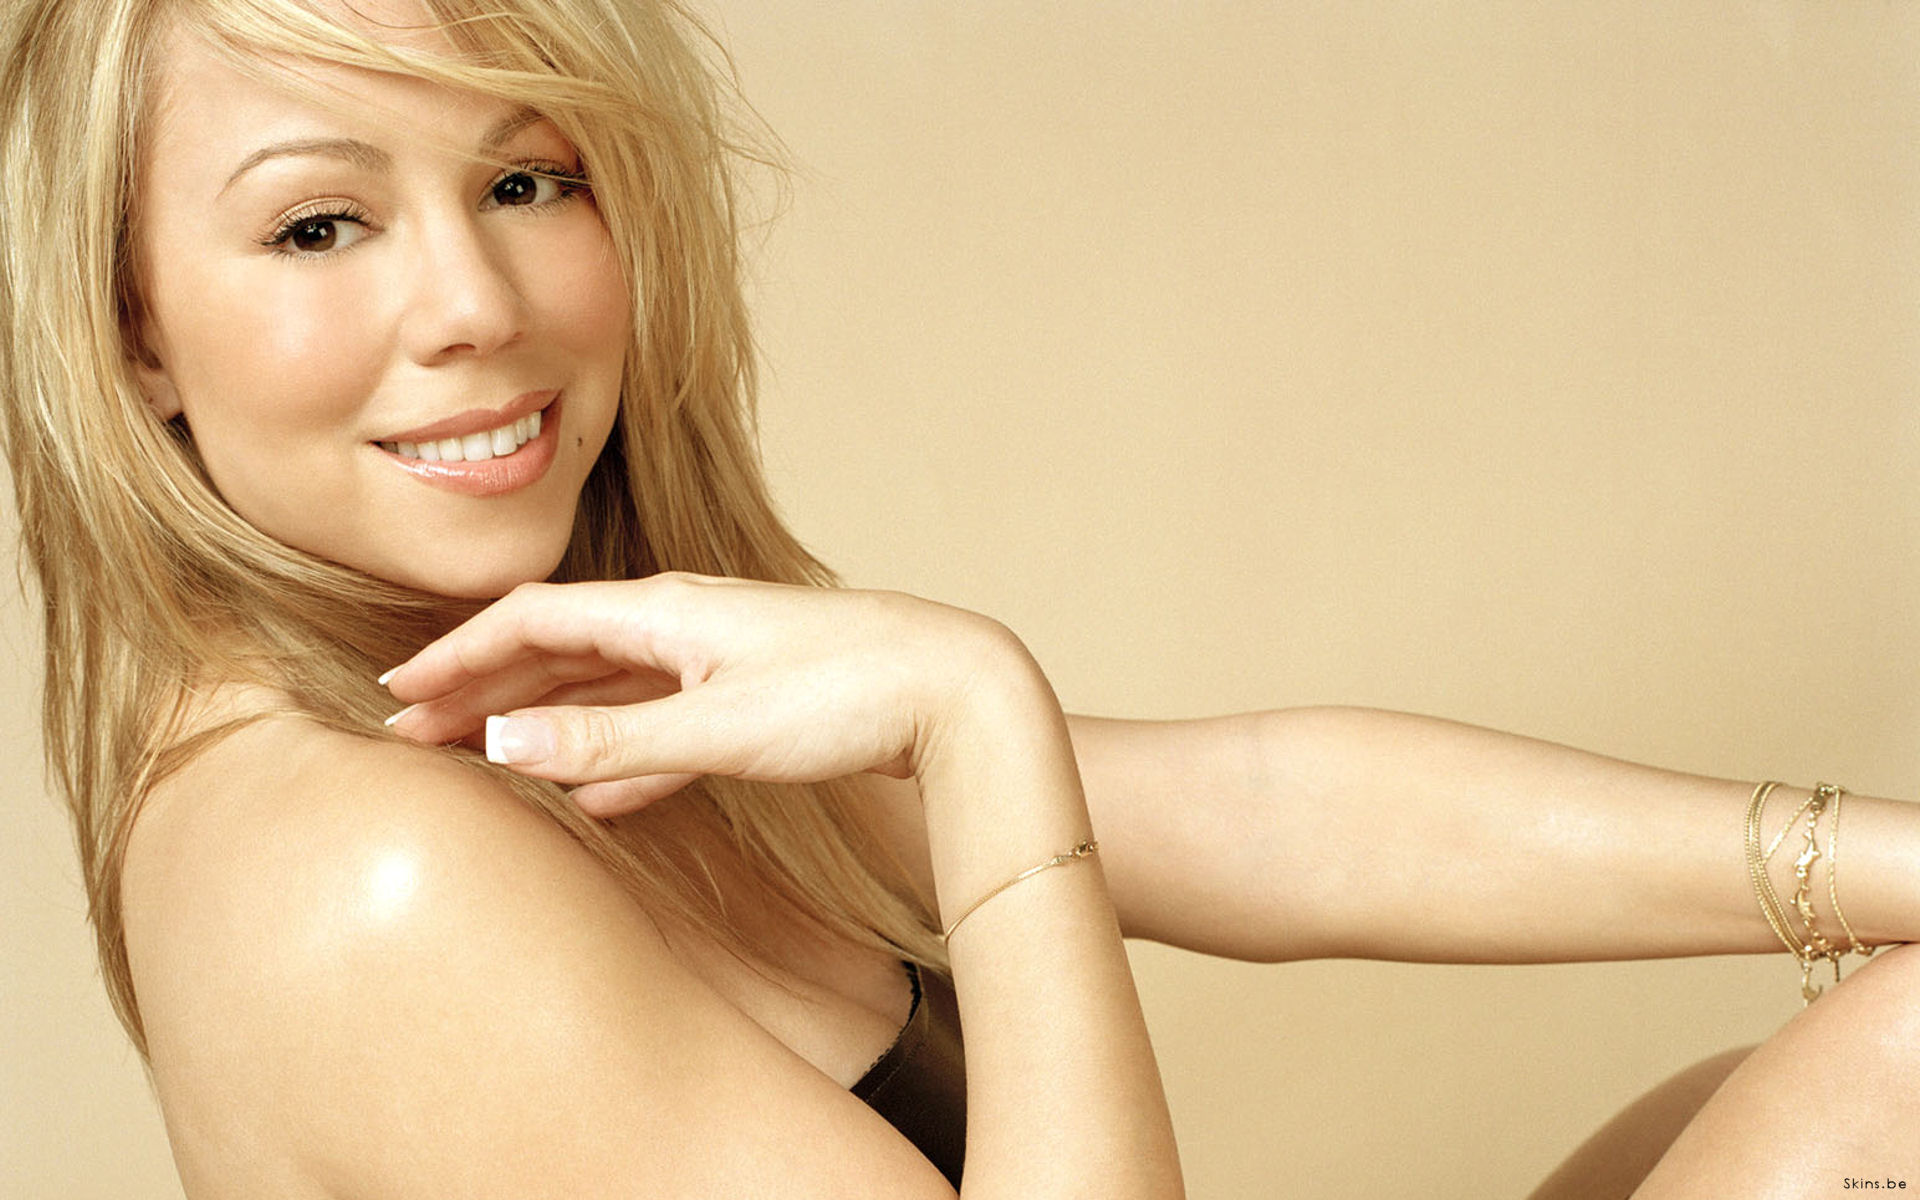 ... Mariah_Carey_1920x1200_009 Mariah_Carey_Wallpaper_by_qwk mariah_carey_wallpapers_028 mariah-carey_bfa68b69 ...